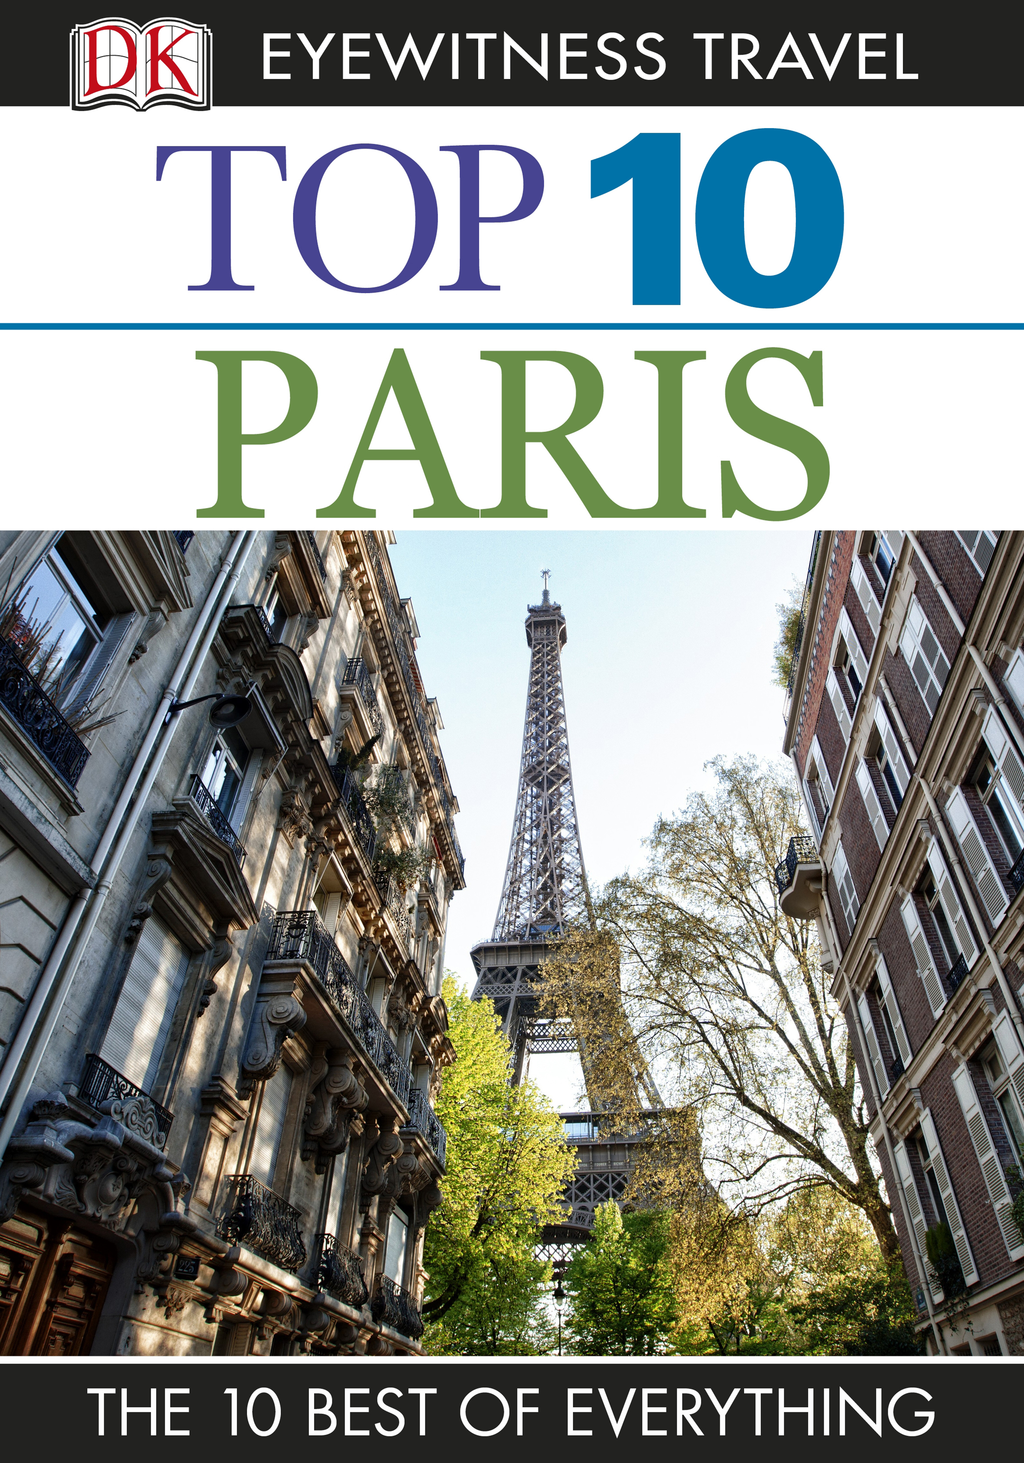 DK Eyewitness Top 10 Travel Guide: Paris Paris